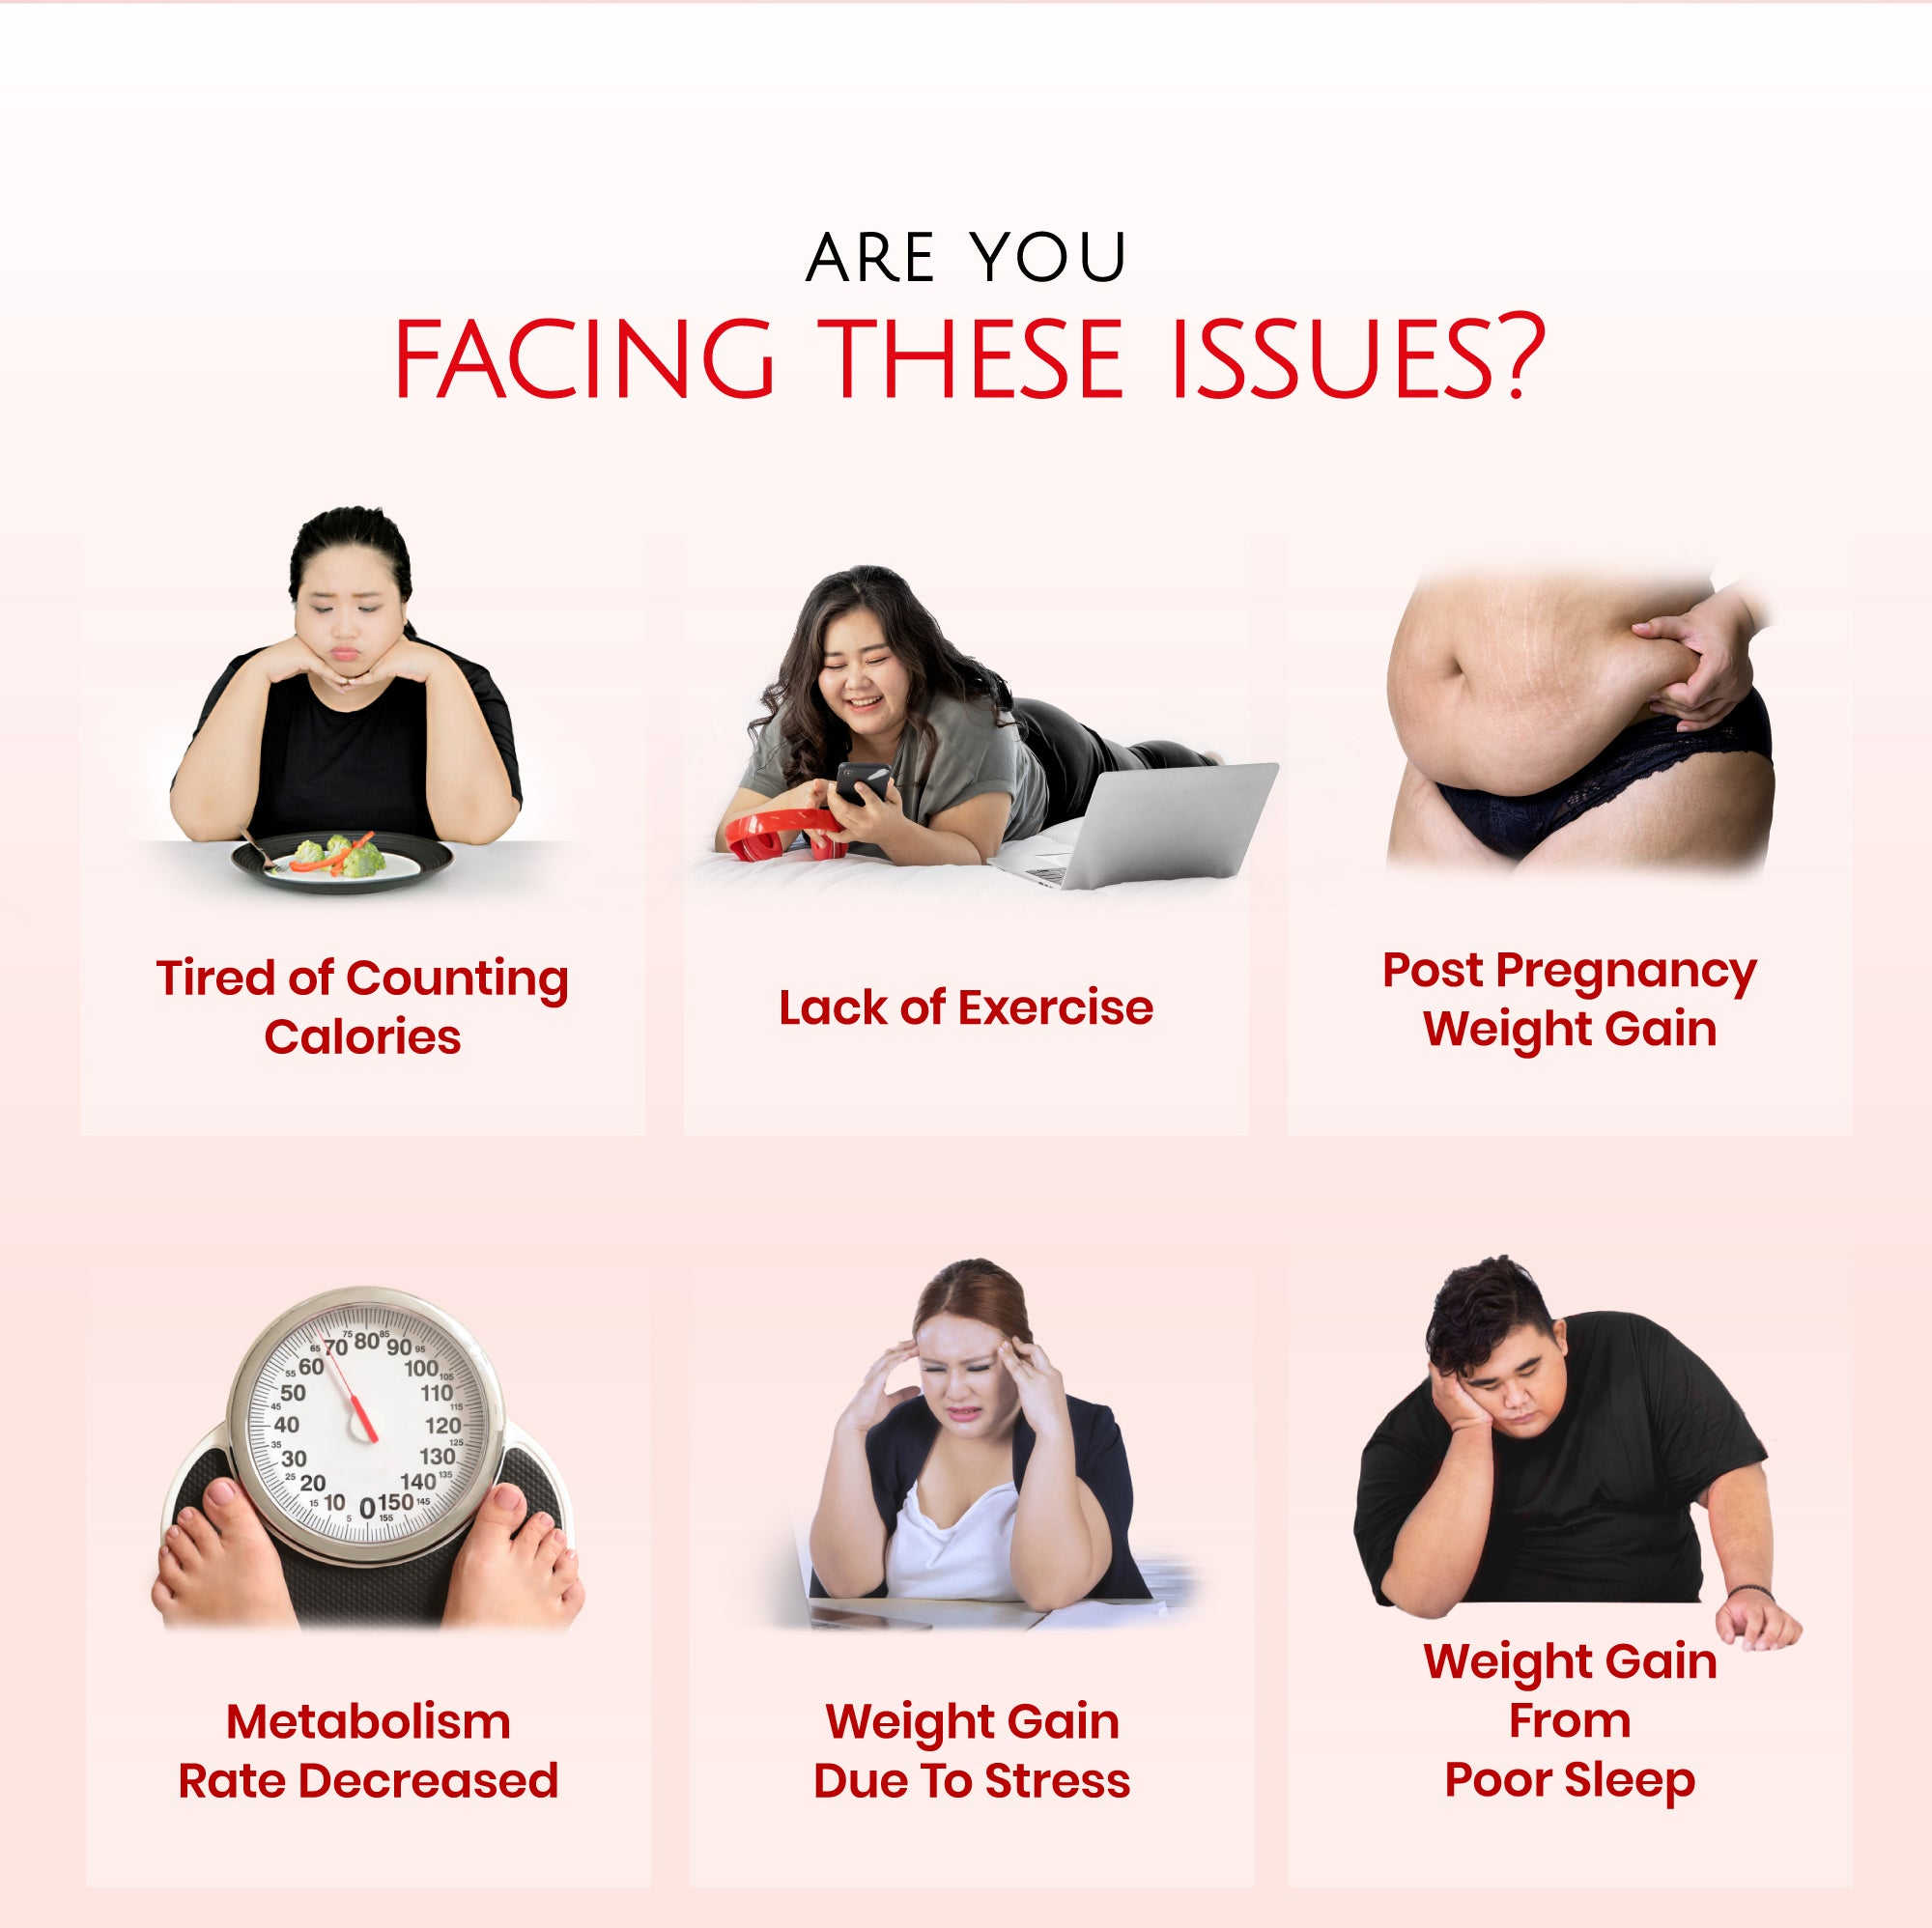 AVALON® Fat Burner Plus is suitable for people with issues such as, lack of exercise, post pregnancy weight gain, slow metabolism, weight gain due to stress and lack of sleep.